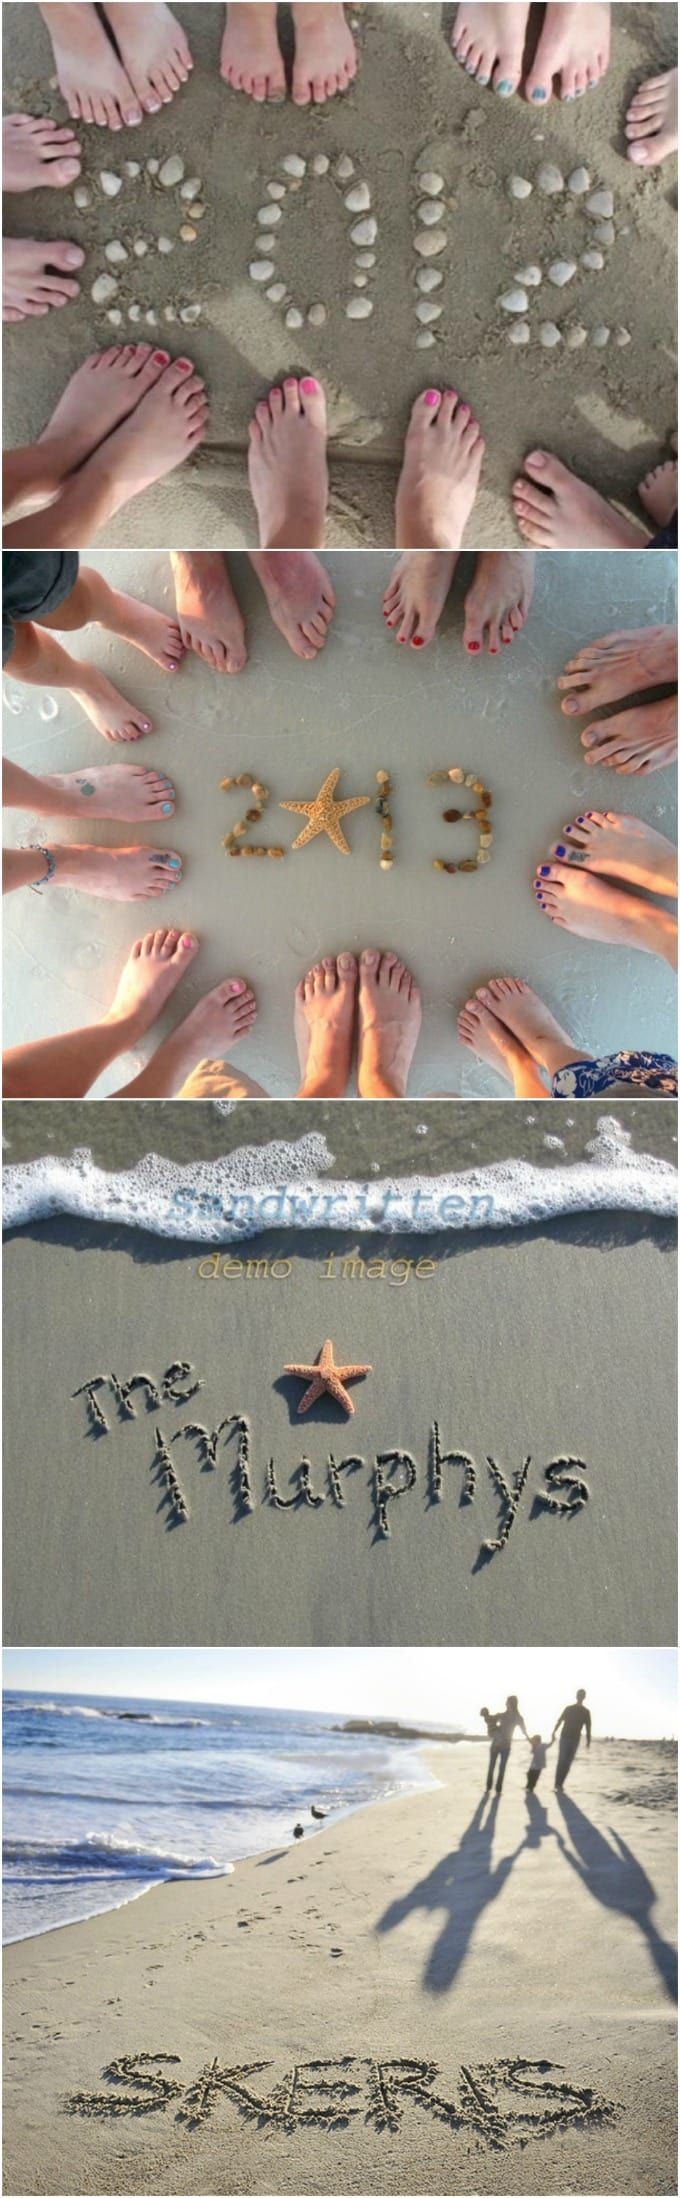 Great beachwriting ideas and other great beach pictures and beach hacks and tips